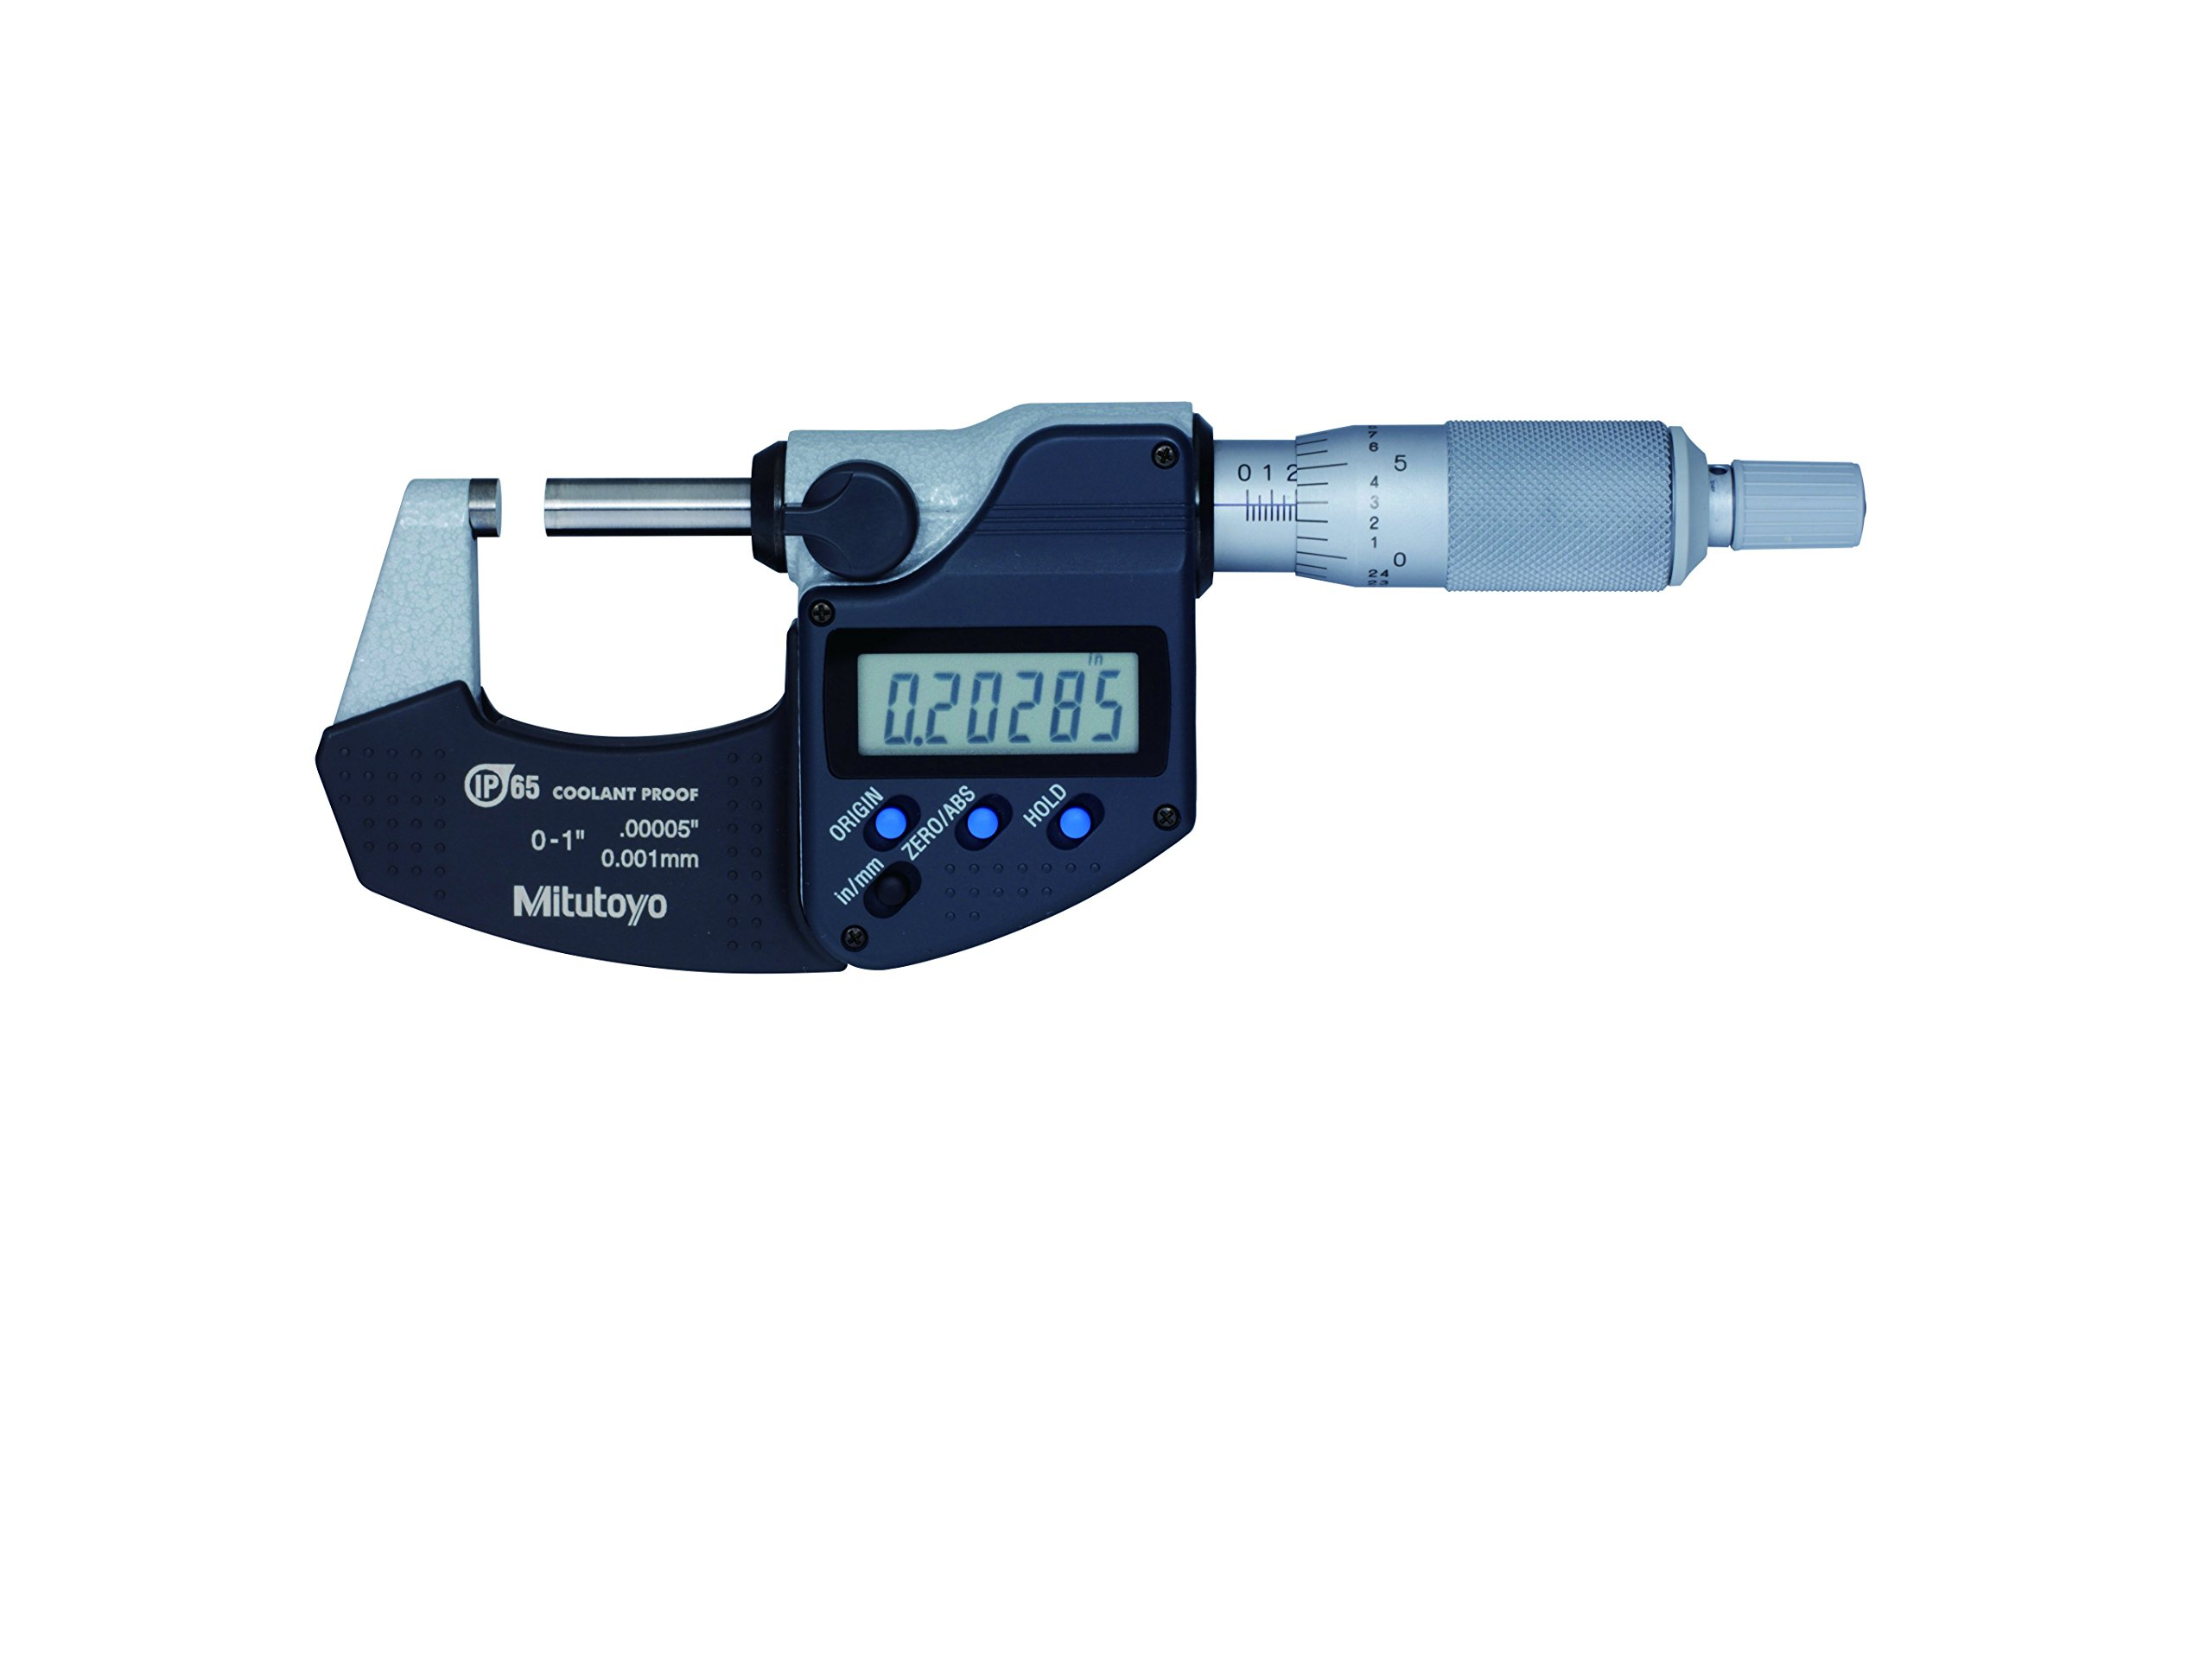 Mitutoyo 293-340-30 Digital Micrometer, Inch/Metric, Ratchet Thimble, 0-1'' (0-25mm) Range, 0.00005'' (0.001mm) Resolution, +/-0.00005'' Accuracy, Meets IP65 Specifications by Mitutoyo